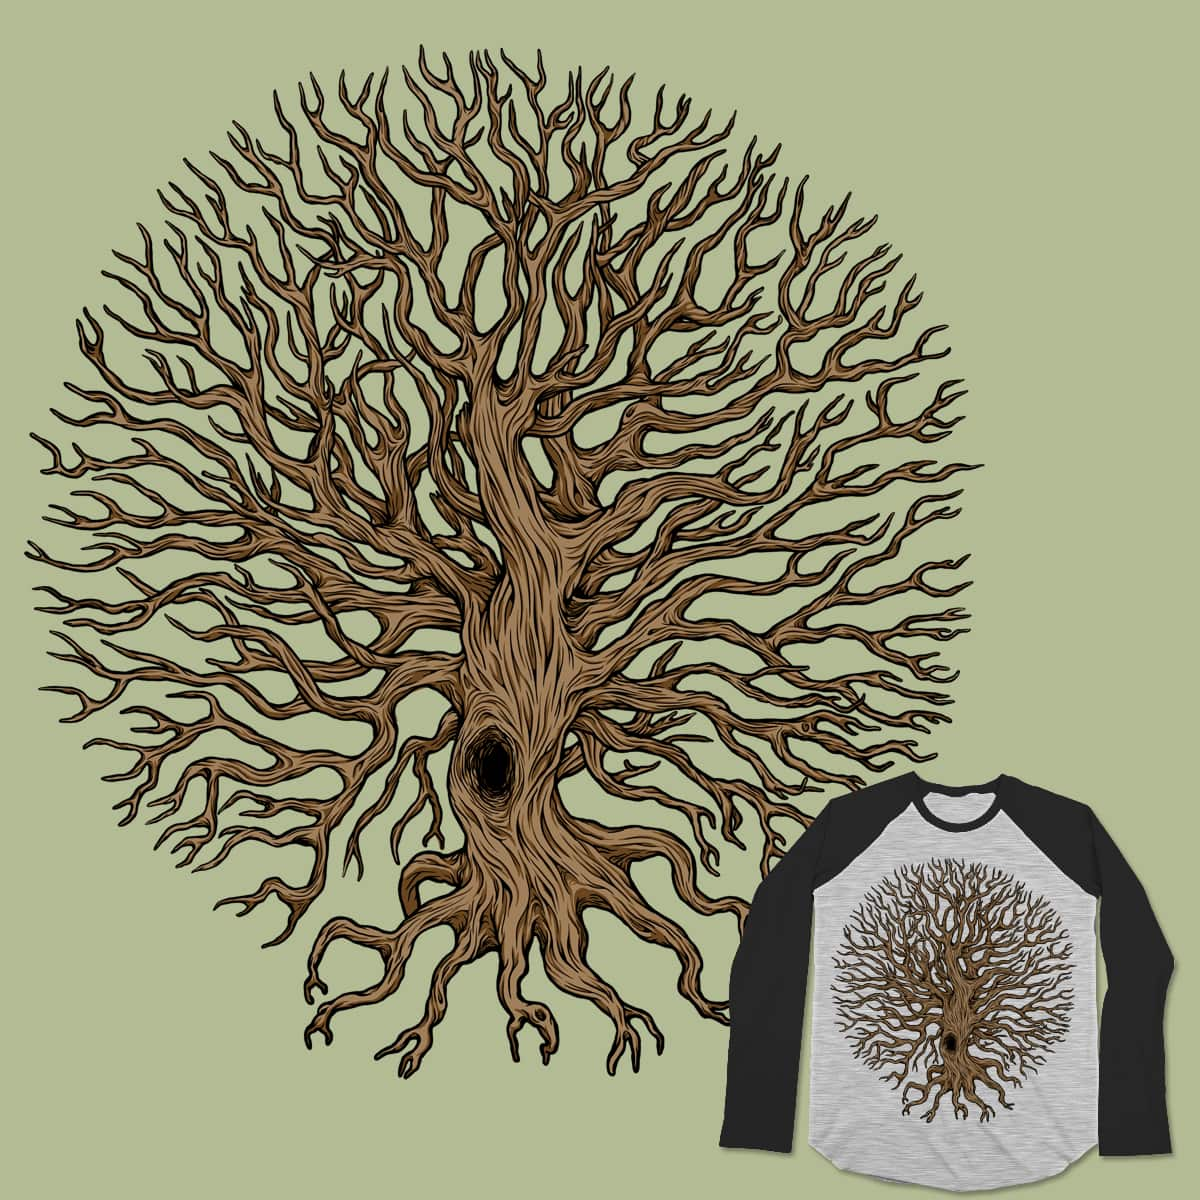 Autumn by theledexter on Threadless